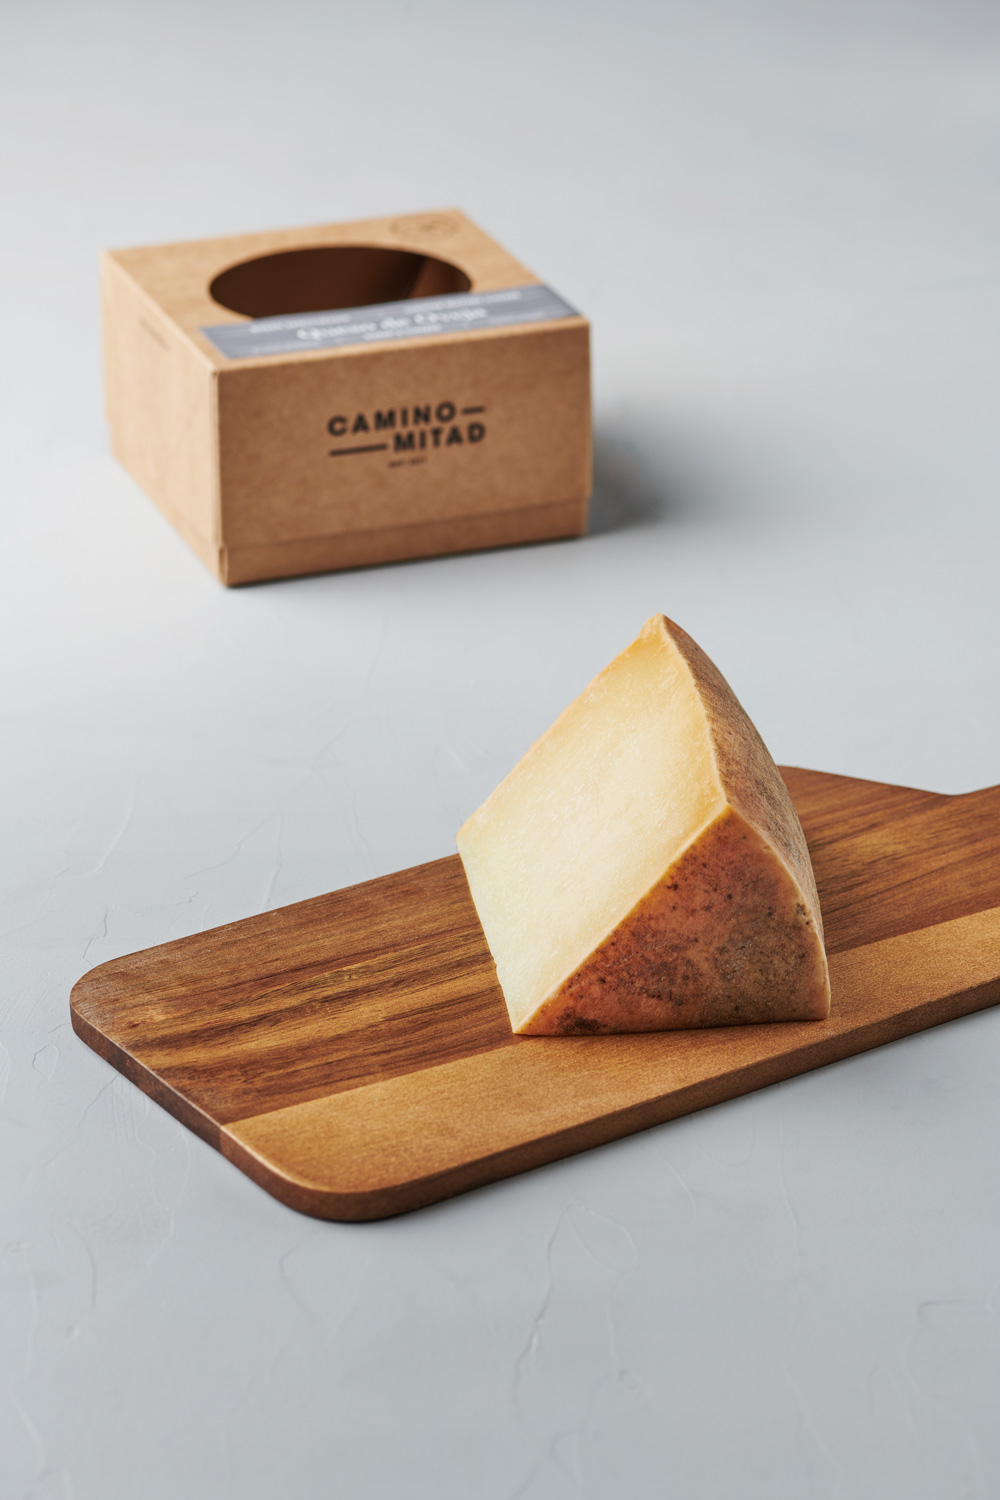 Queso de Oveja Curado MATURE SHEEP'S CHEESE - Camino Mitad